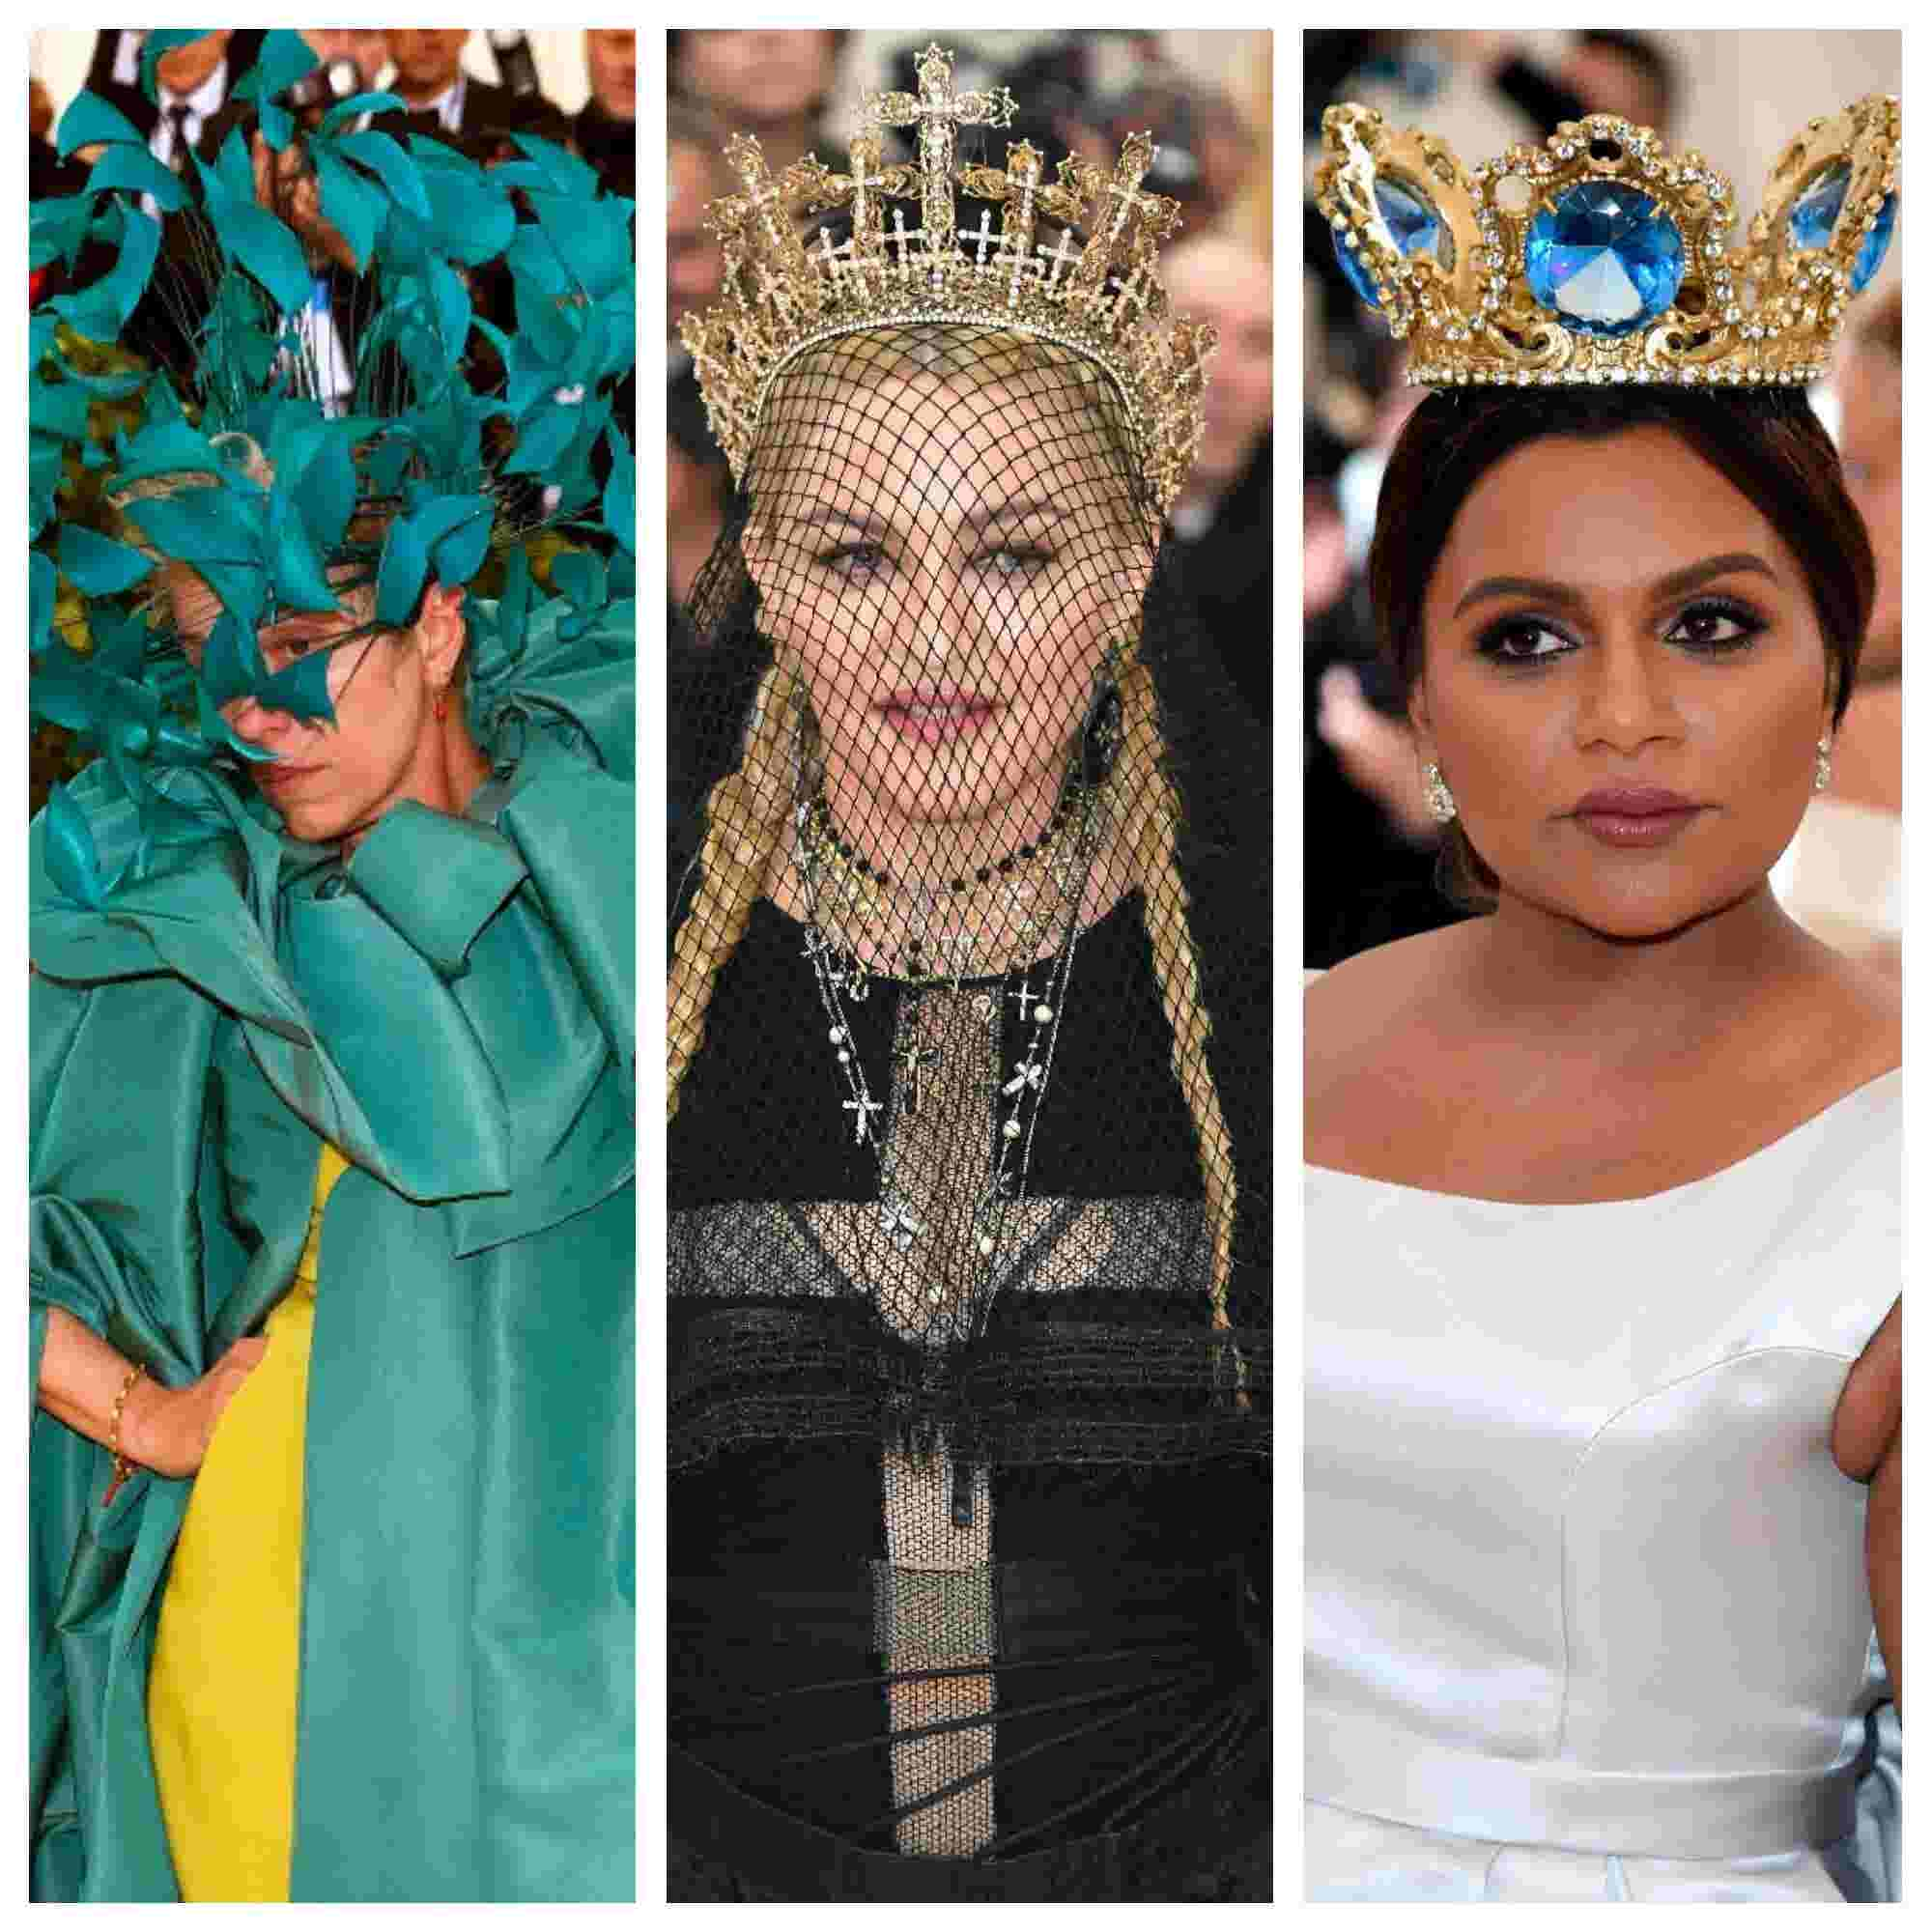 750a520c7a9da Met Gala 2019 preview  Everything you need to know about fashion s biggest  night